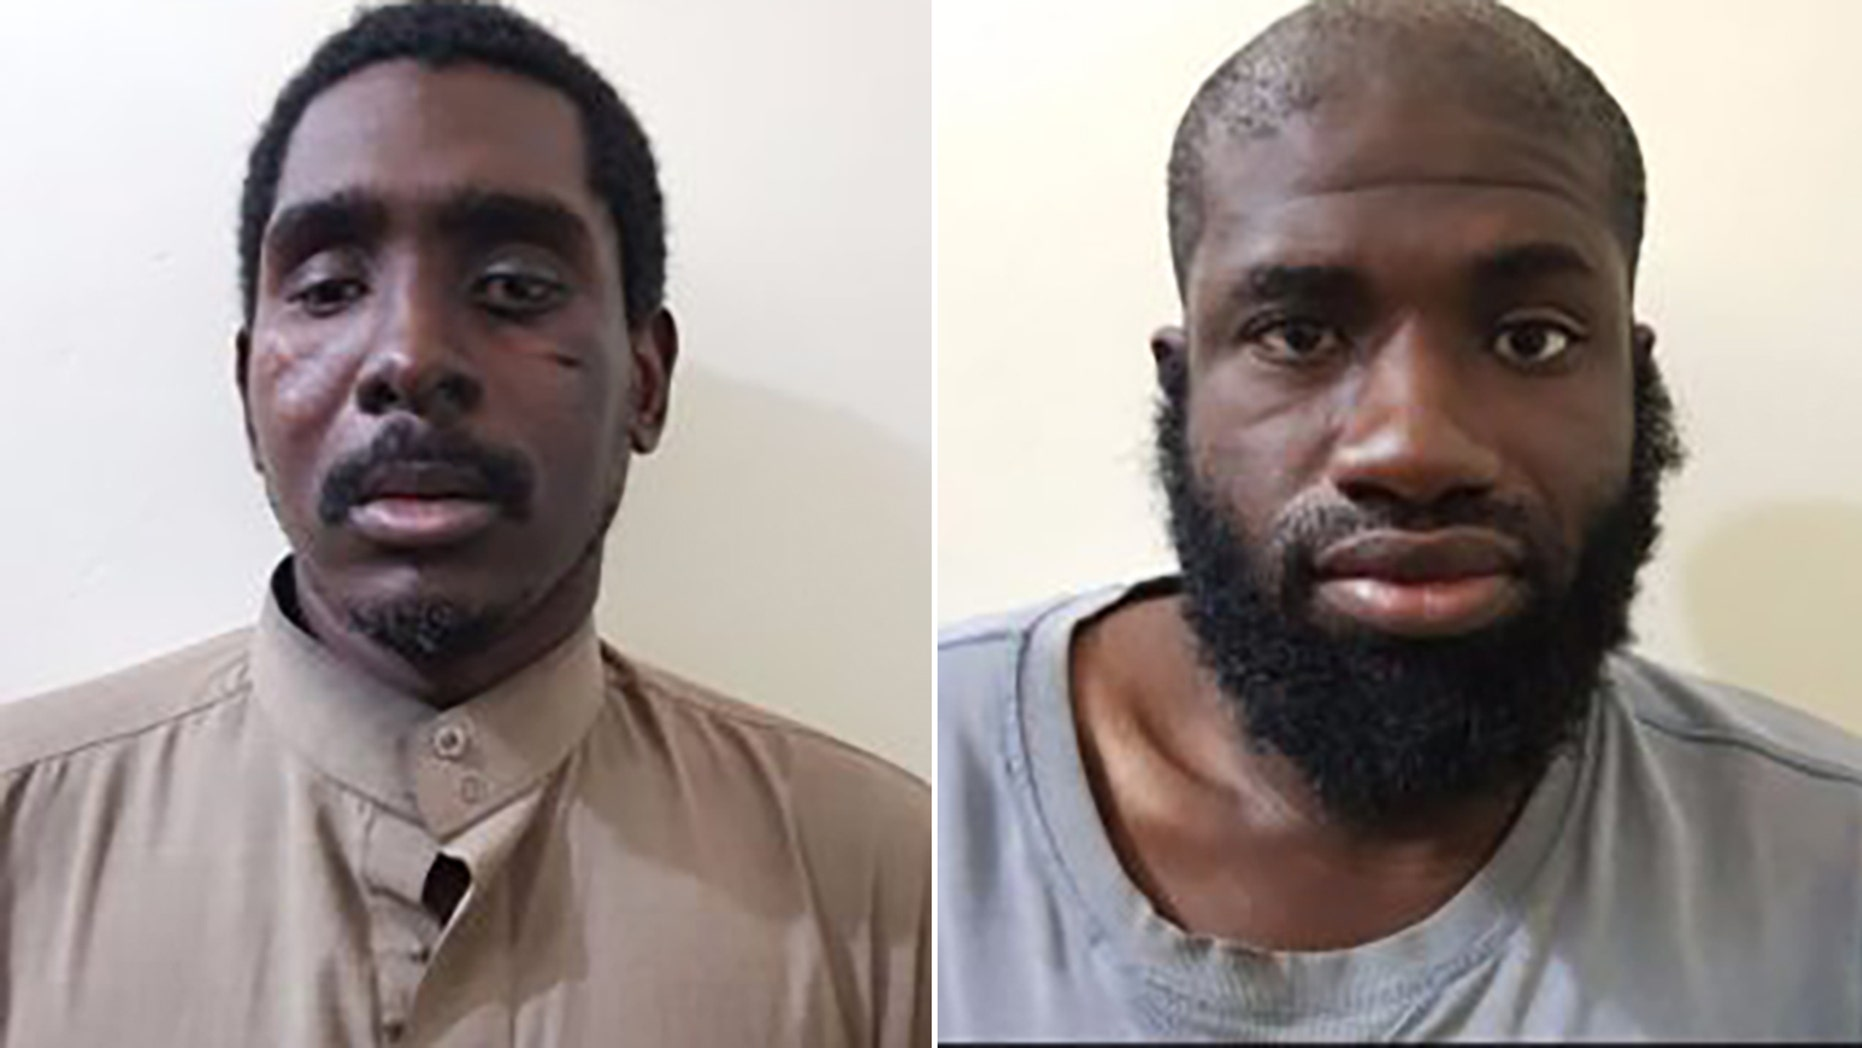 Zaid Abed al-Hamid, left, andWarren Christopher Clark aresaid to be American citizens fighting for ISIS who were recently captured by Syrian Democratic Forces. (SDF-Press.com)